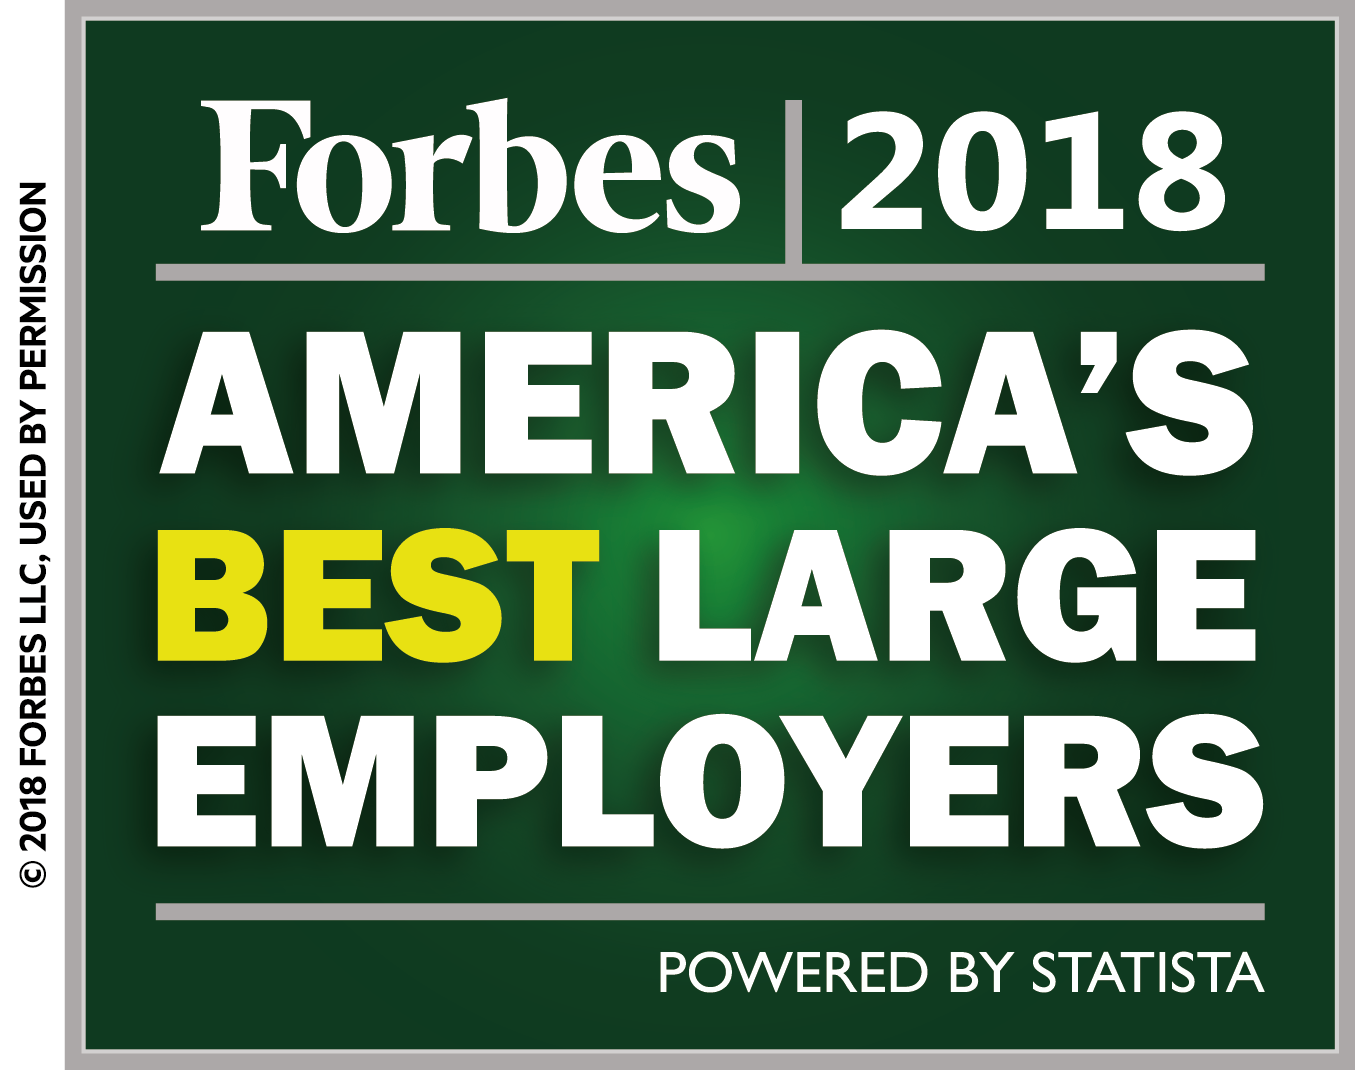 Forbes 2018 Americas Best Large Employers Logo